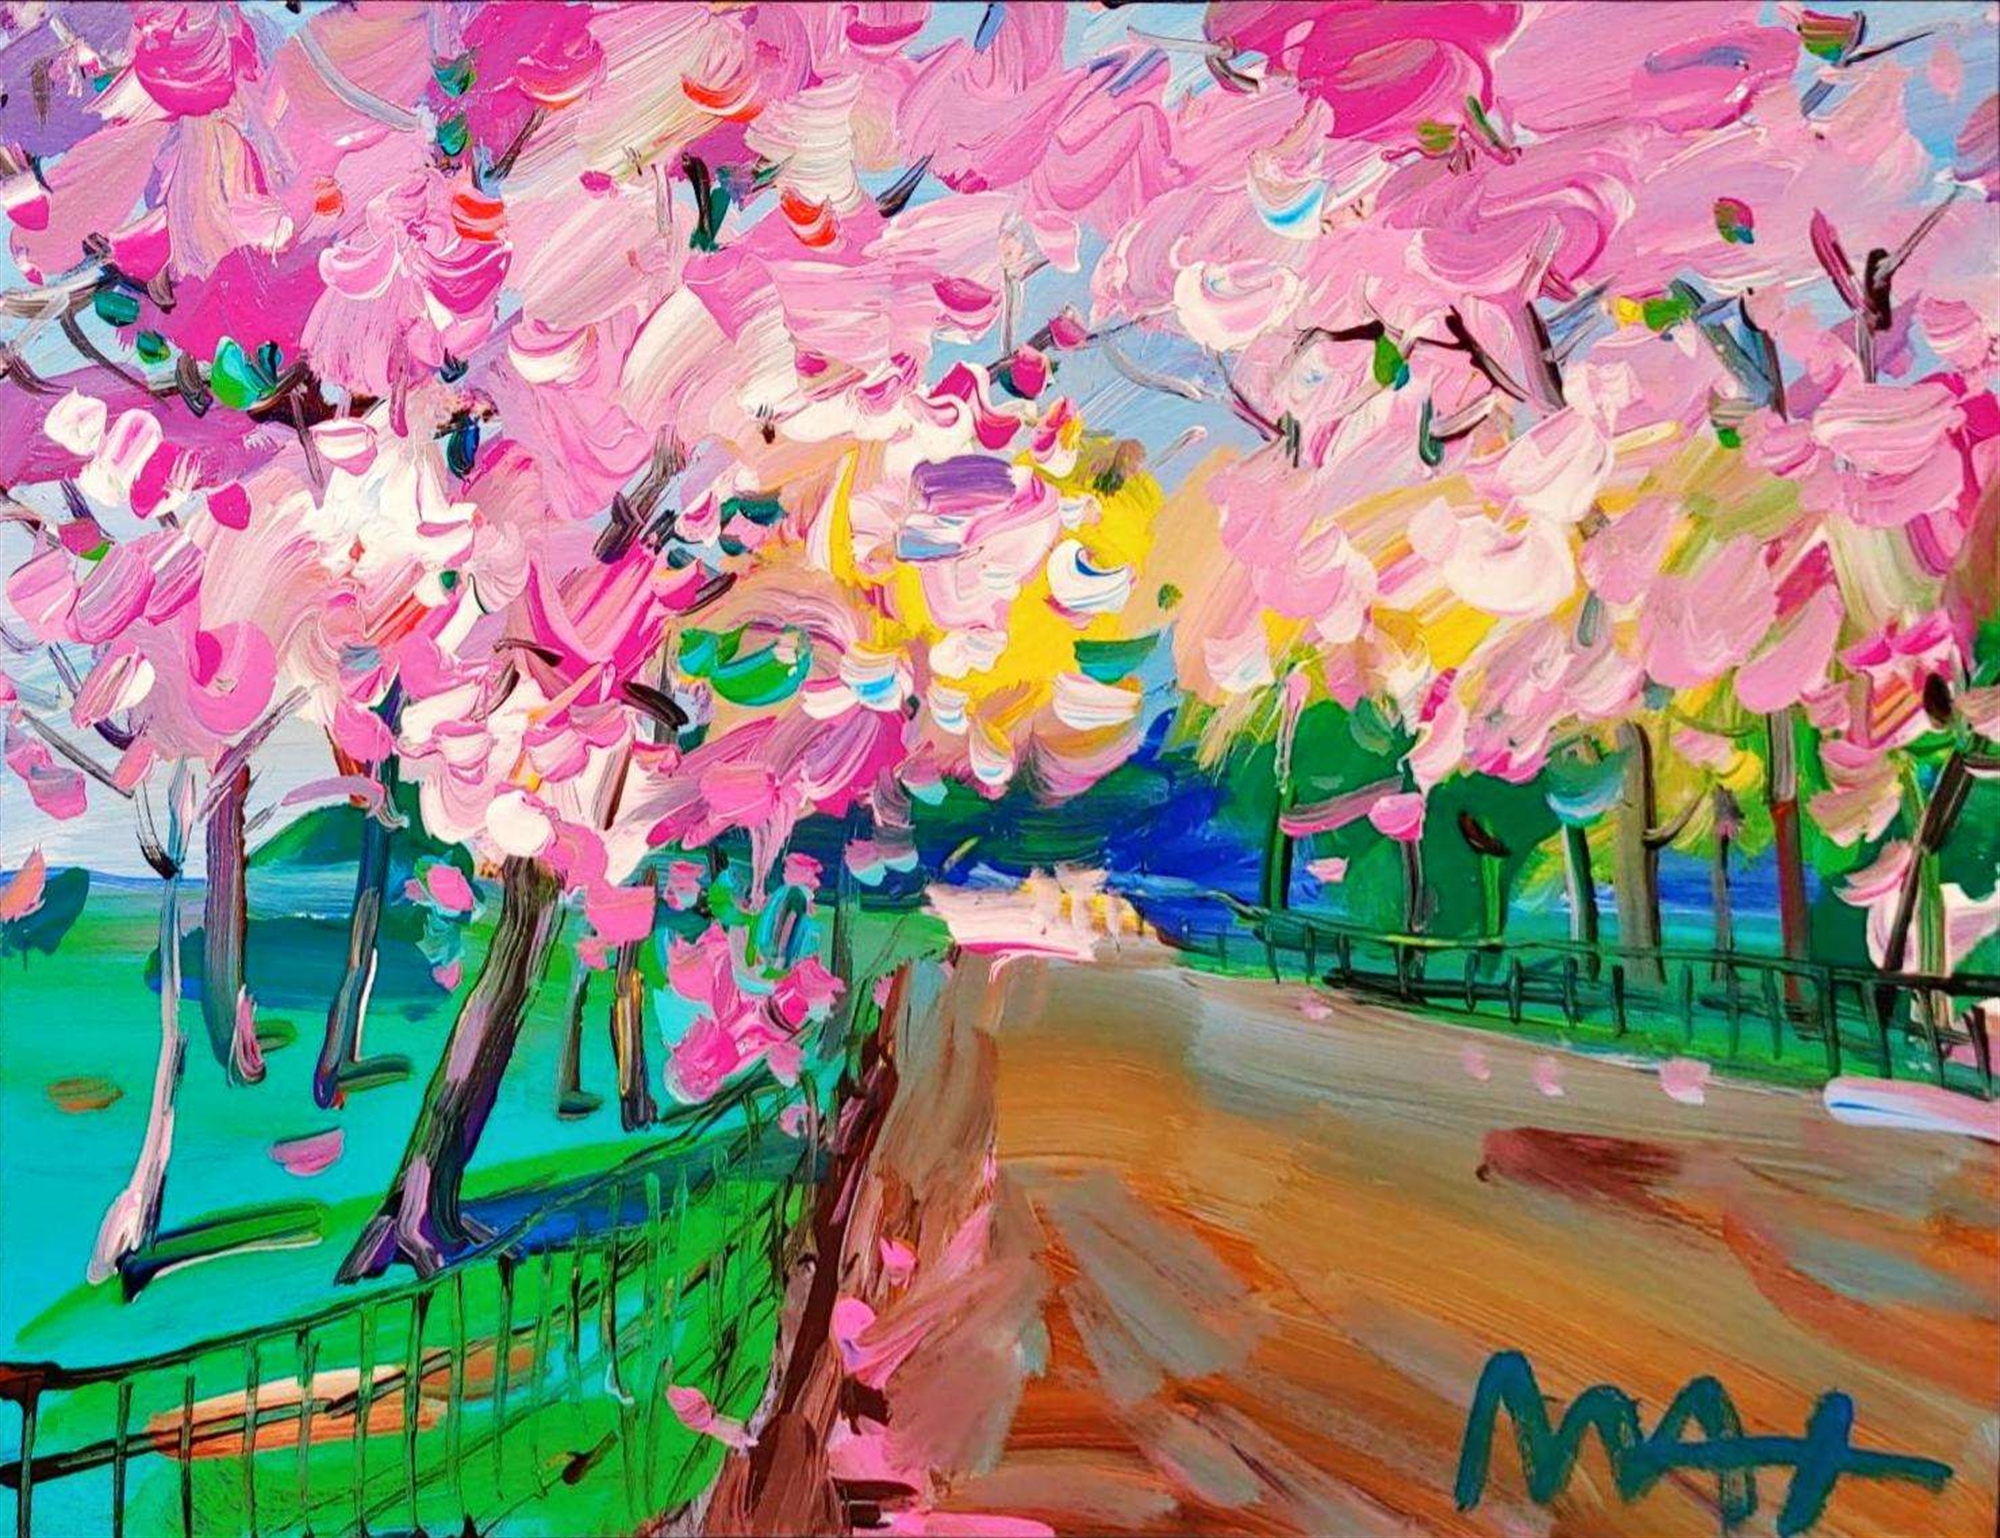 FOUR SEASONS II: SPRING (CENTRAL PARK) by Peter Max